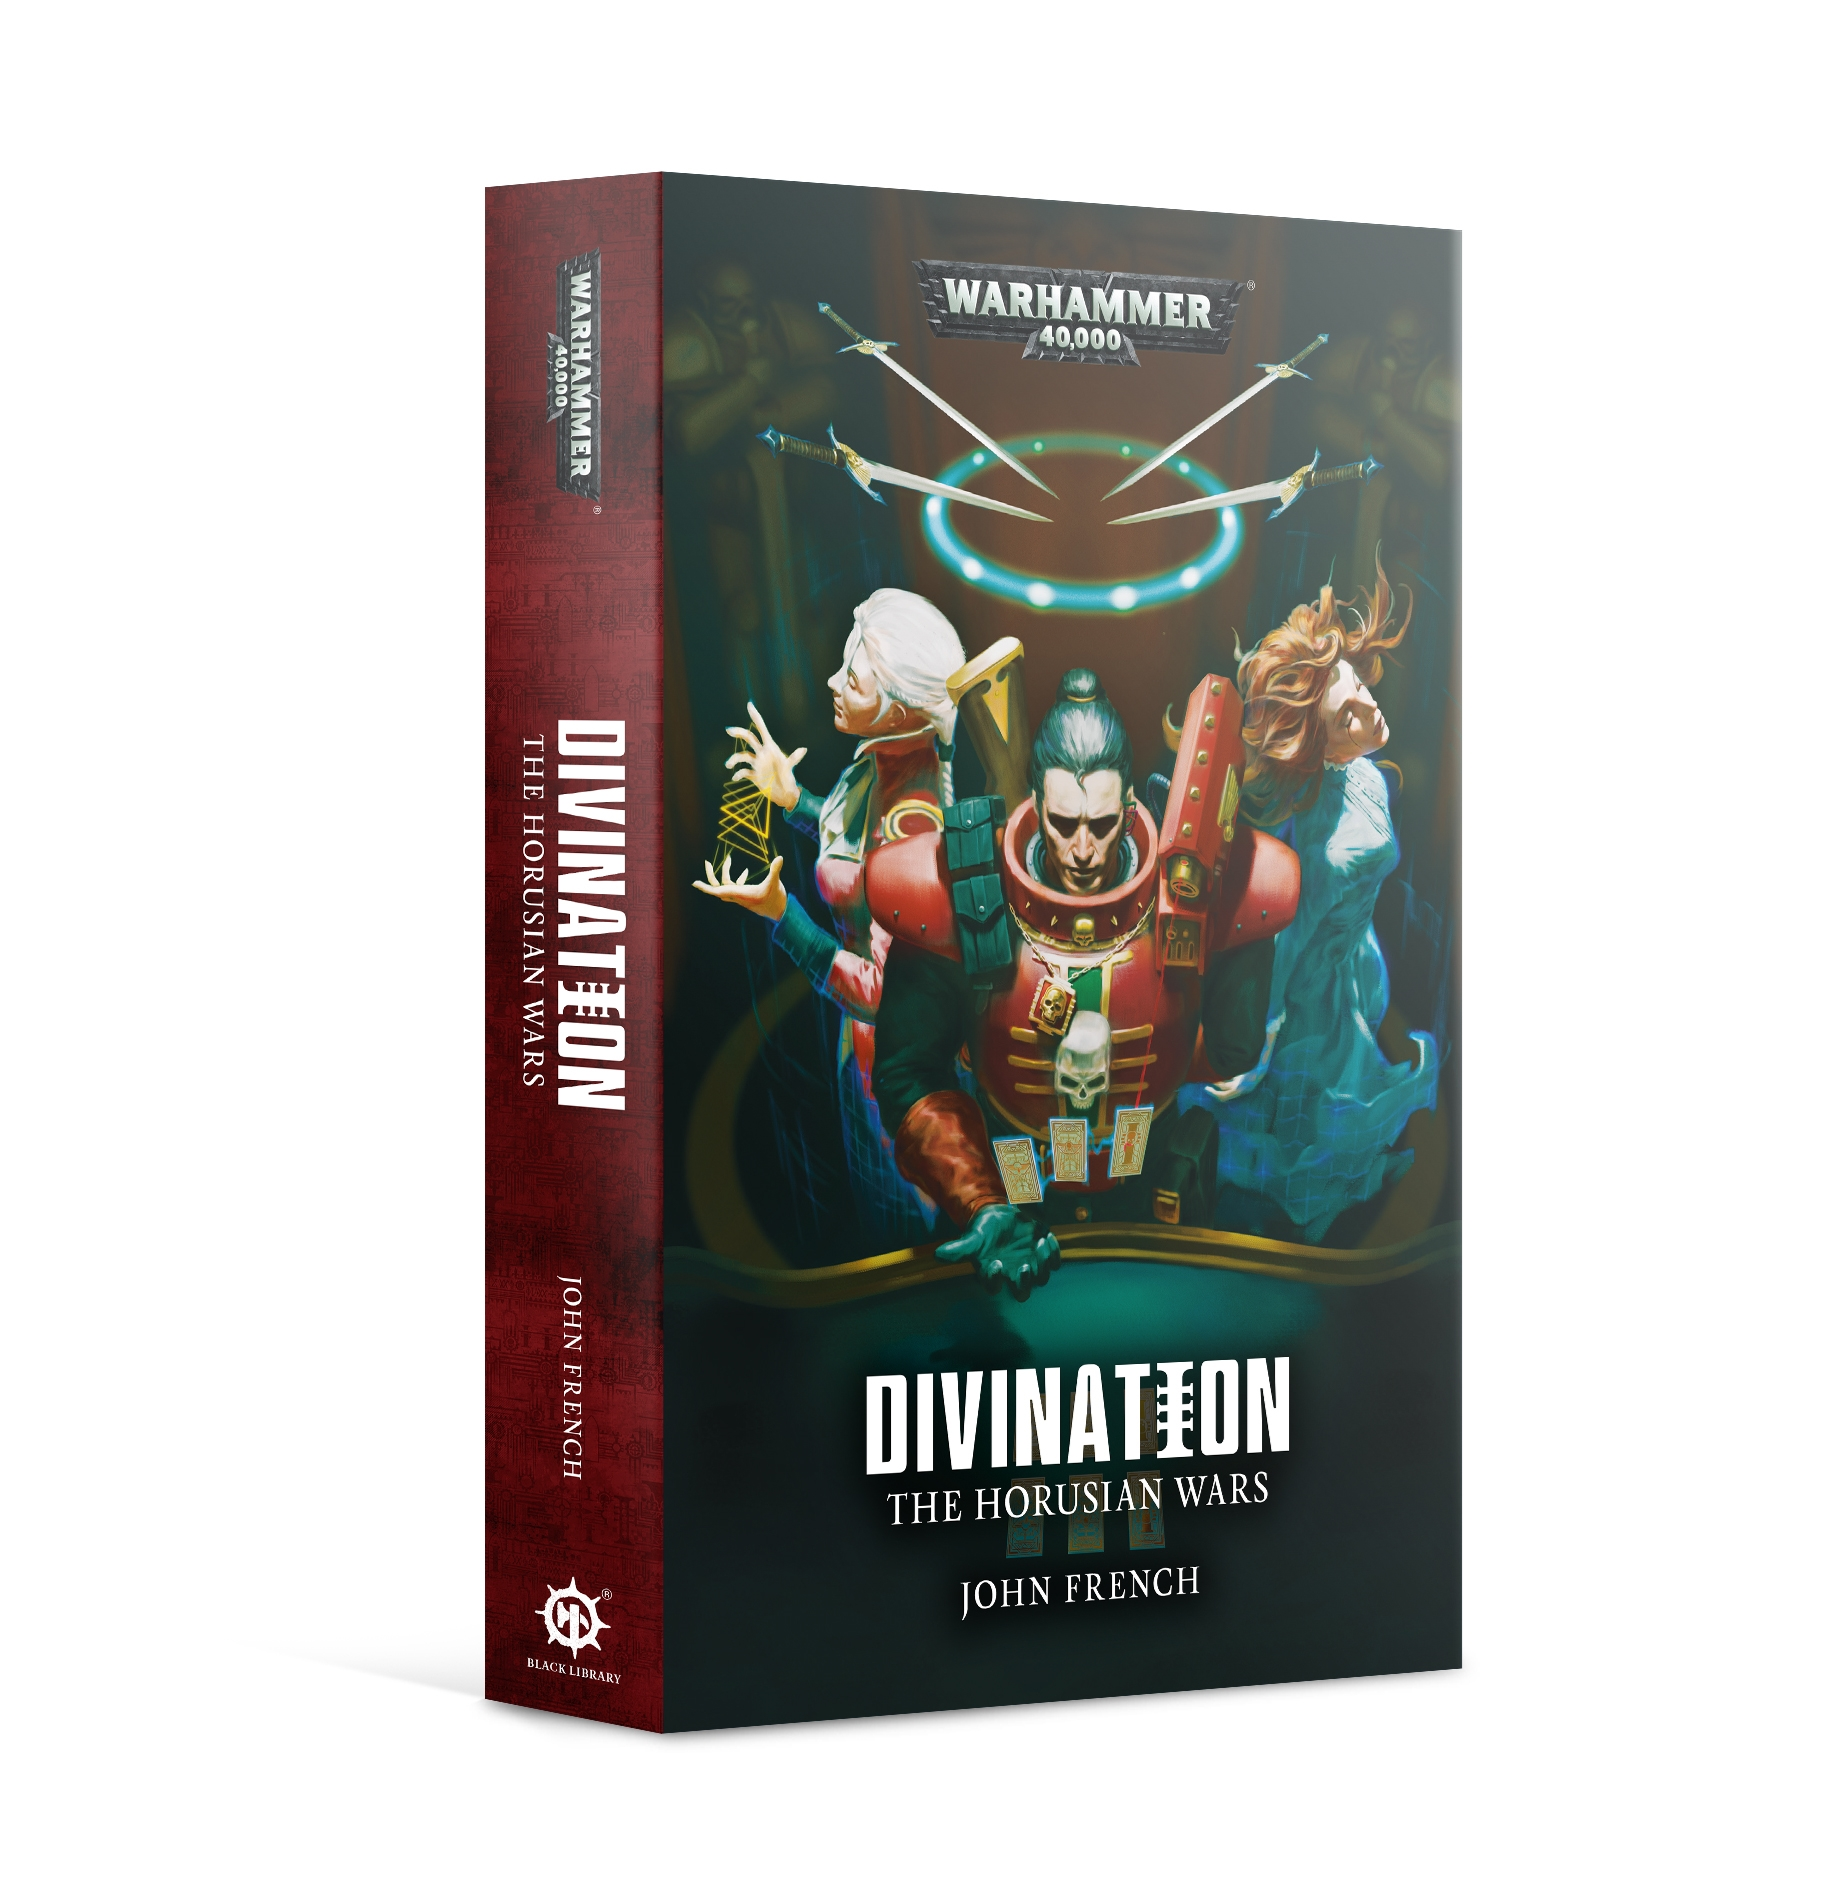 Black Library: Warhammer 40,000: The Horusian Wars: Divination (PB)